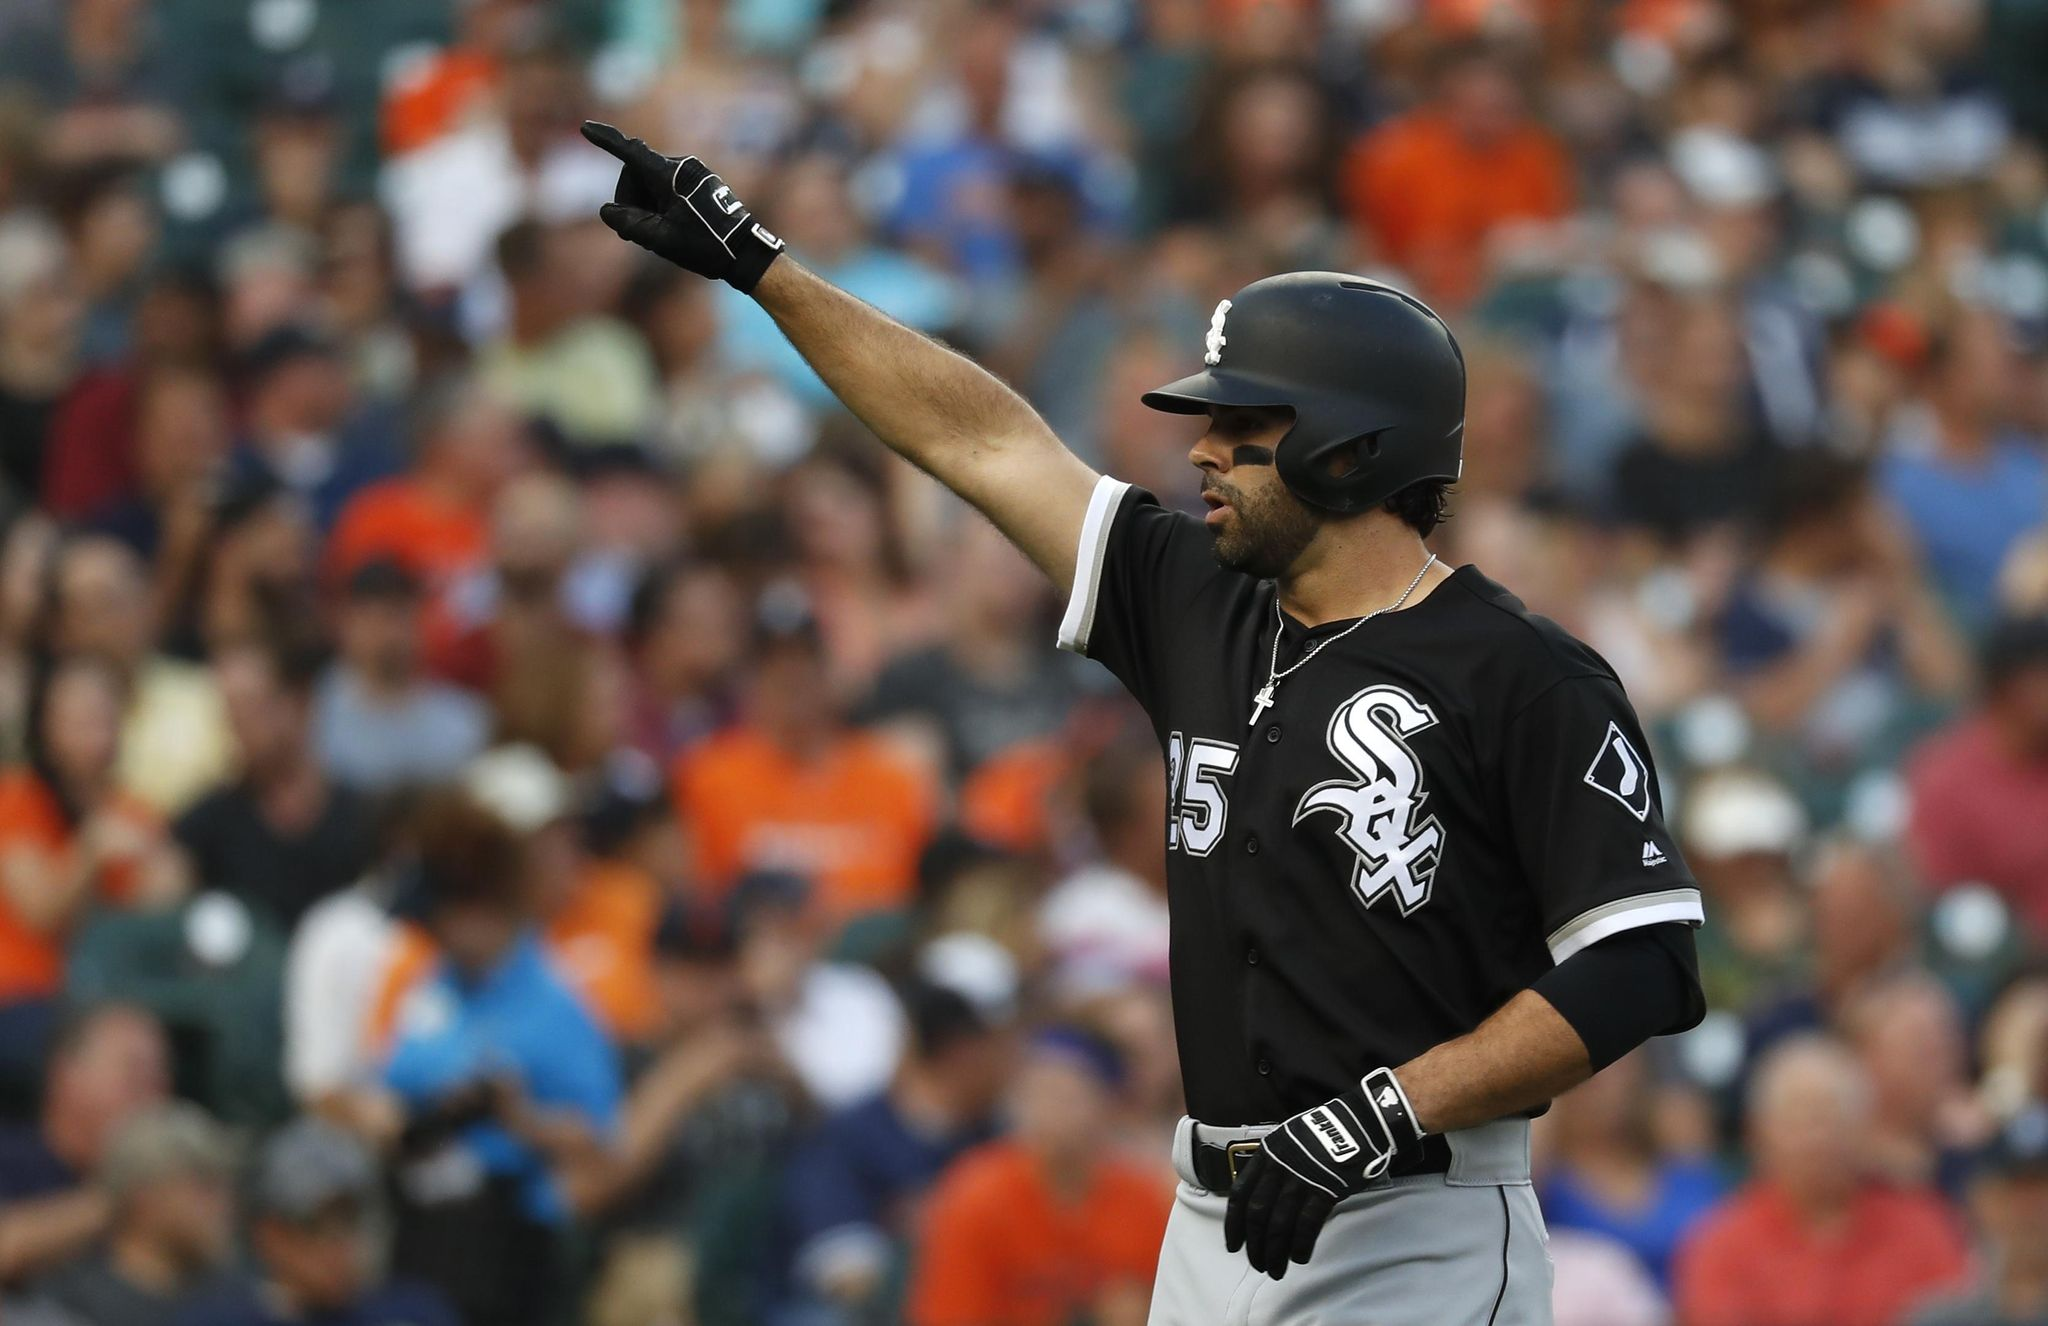 White_sox_tigers_baseball_49410_s2048x1326